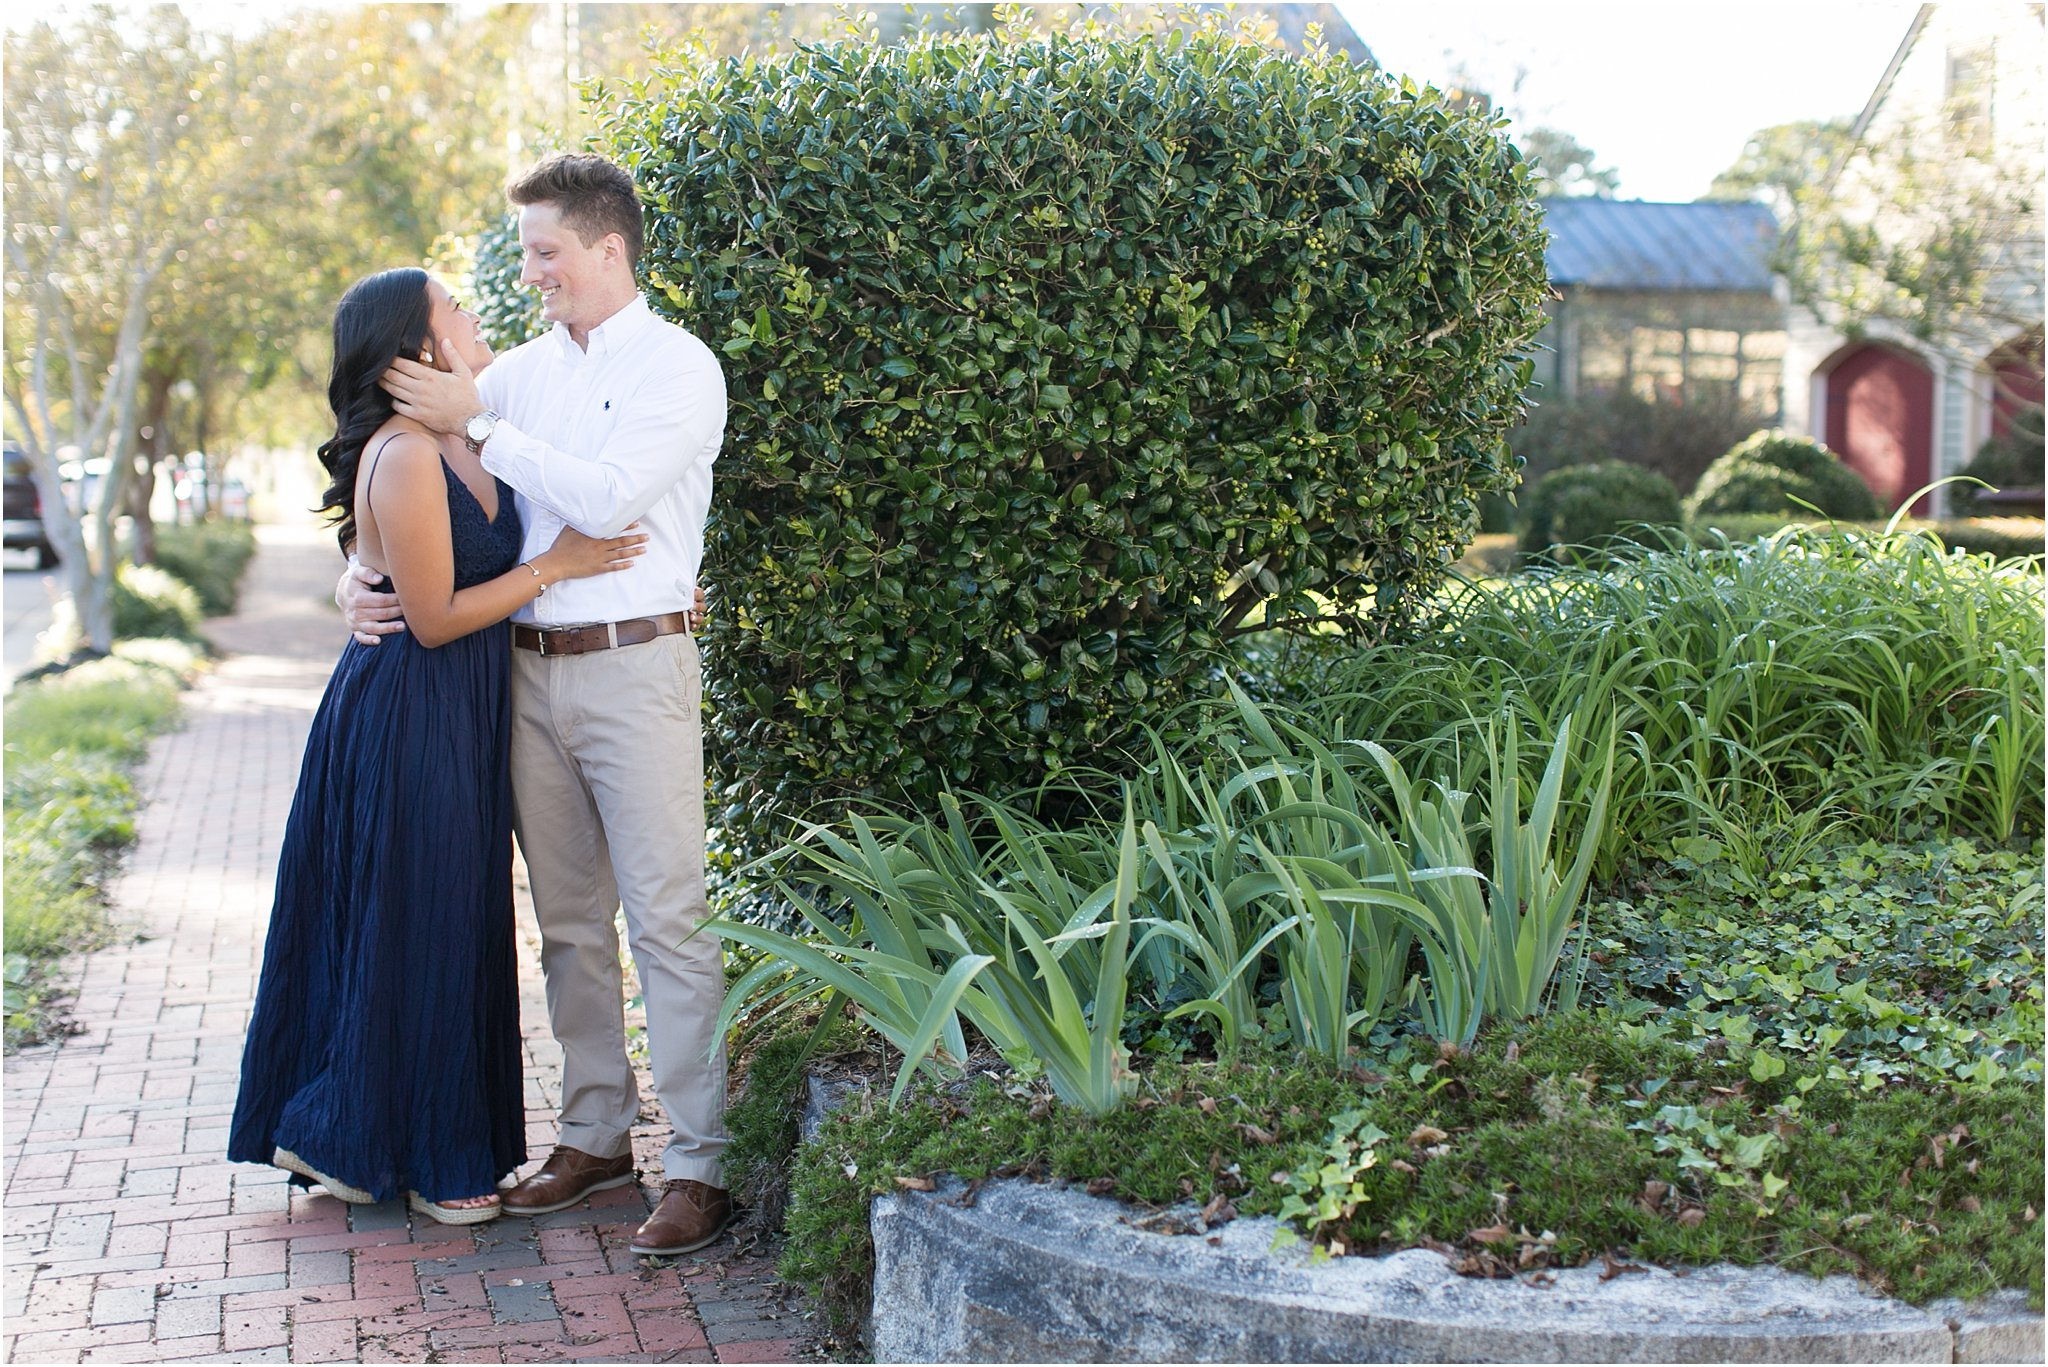 jessica_ryan_photography_virginia_smithfield_historical_downtown_engagement_portraits_candid_authentic_3711